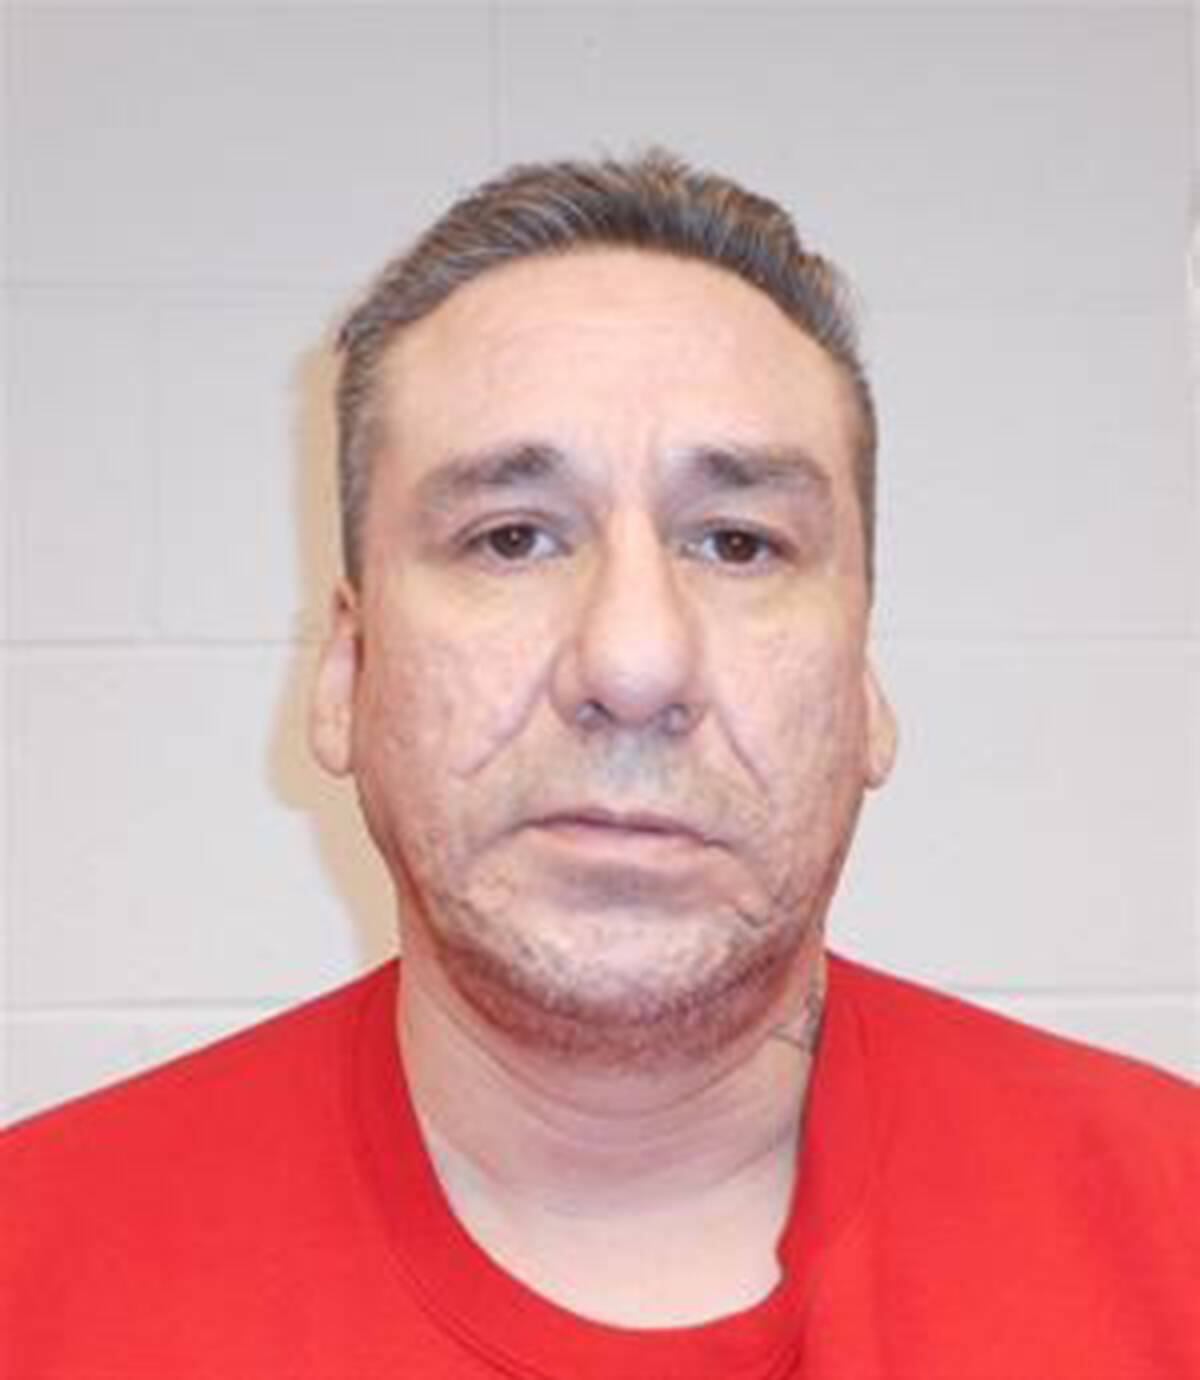 """Name: PEEPCHUK, Lane Age: 47 Height: 6'2"""" ft Weight: 206lbs Hair: Brown Eyes: Brown Wanted: Robbery with Violence and Possession of a Schedule I/II Substance for the Purpose of Trafficking. Warrant in effect: July 8, 2021 Parole Jurisdiction: New Westminster, BC"""